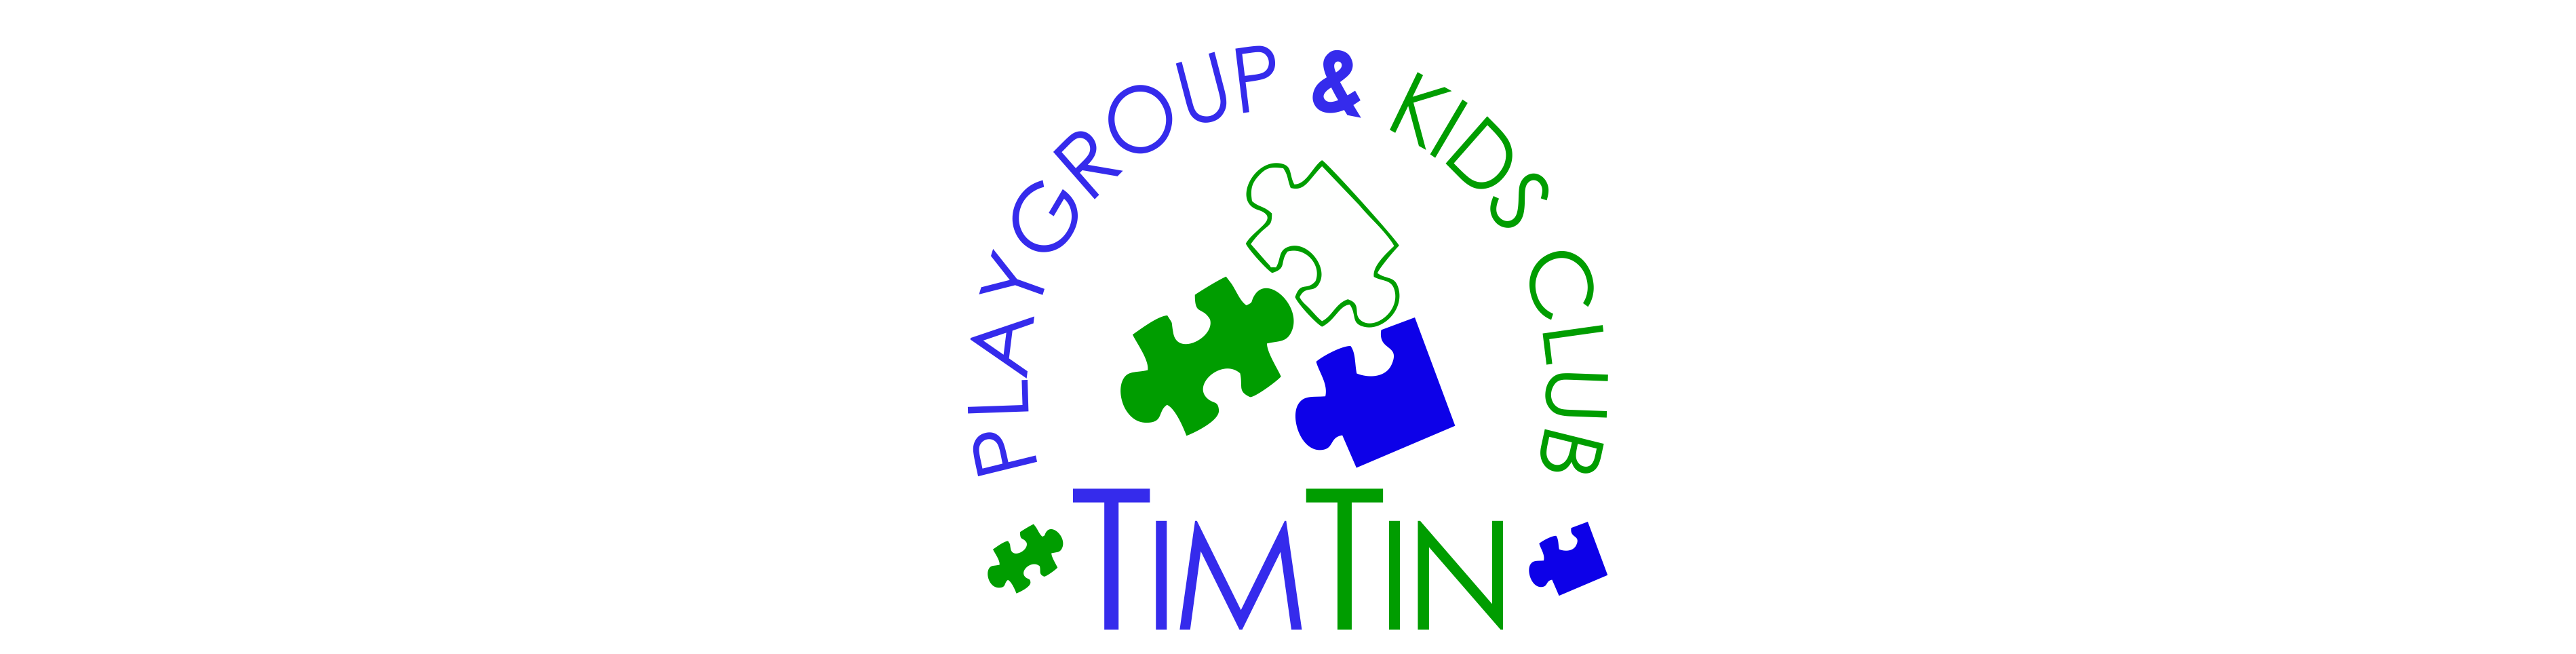 Hello and welcome to the TimTin Playgroup and Kids club webpage